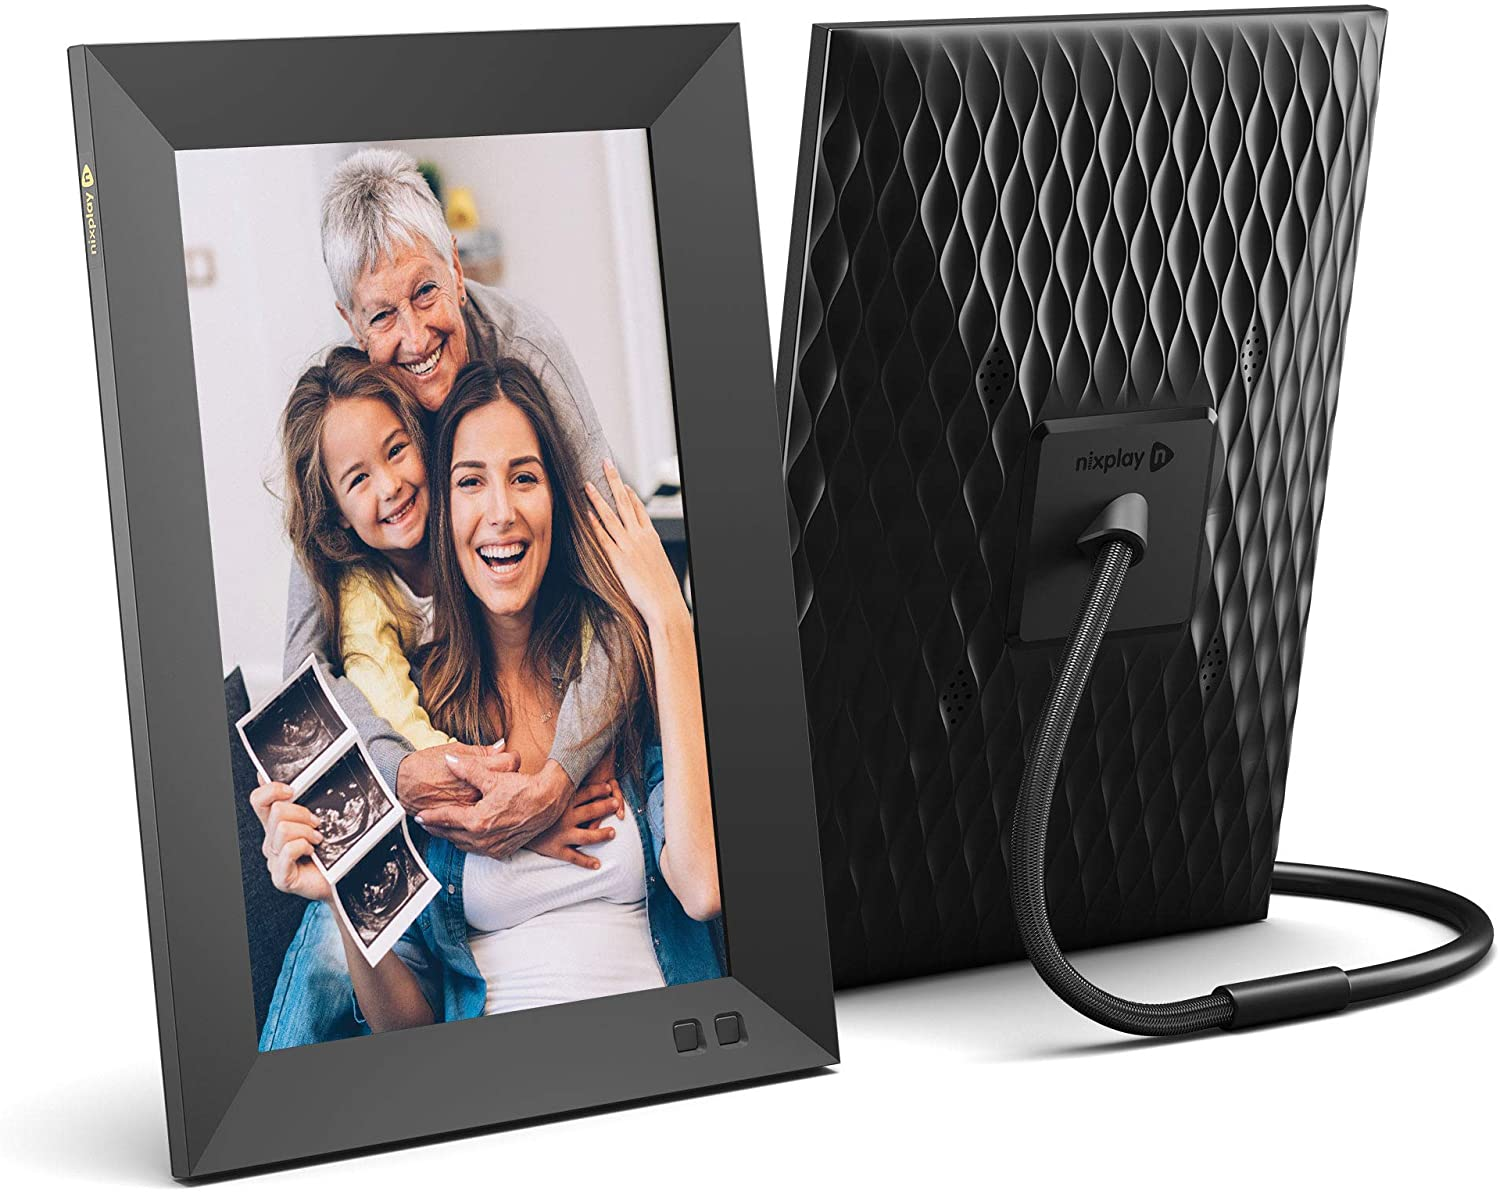 best smart home gadgets of 2020 - picture frame